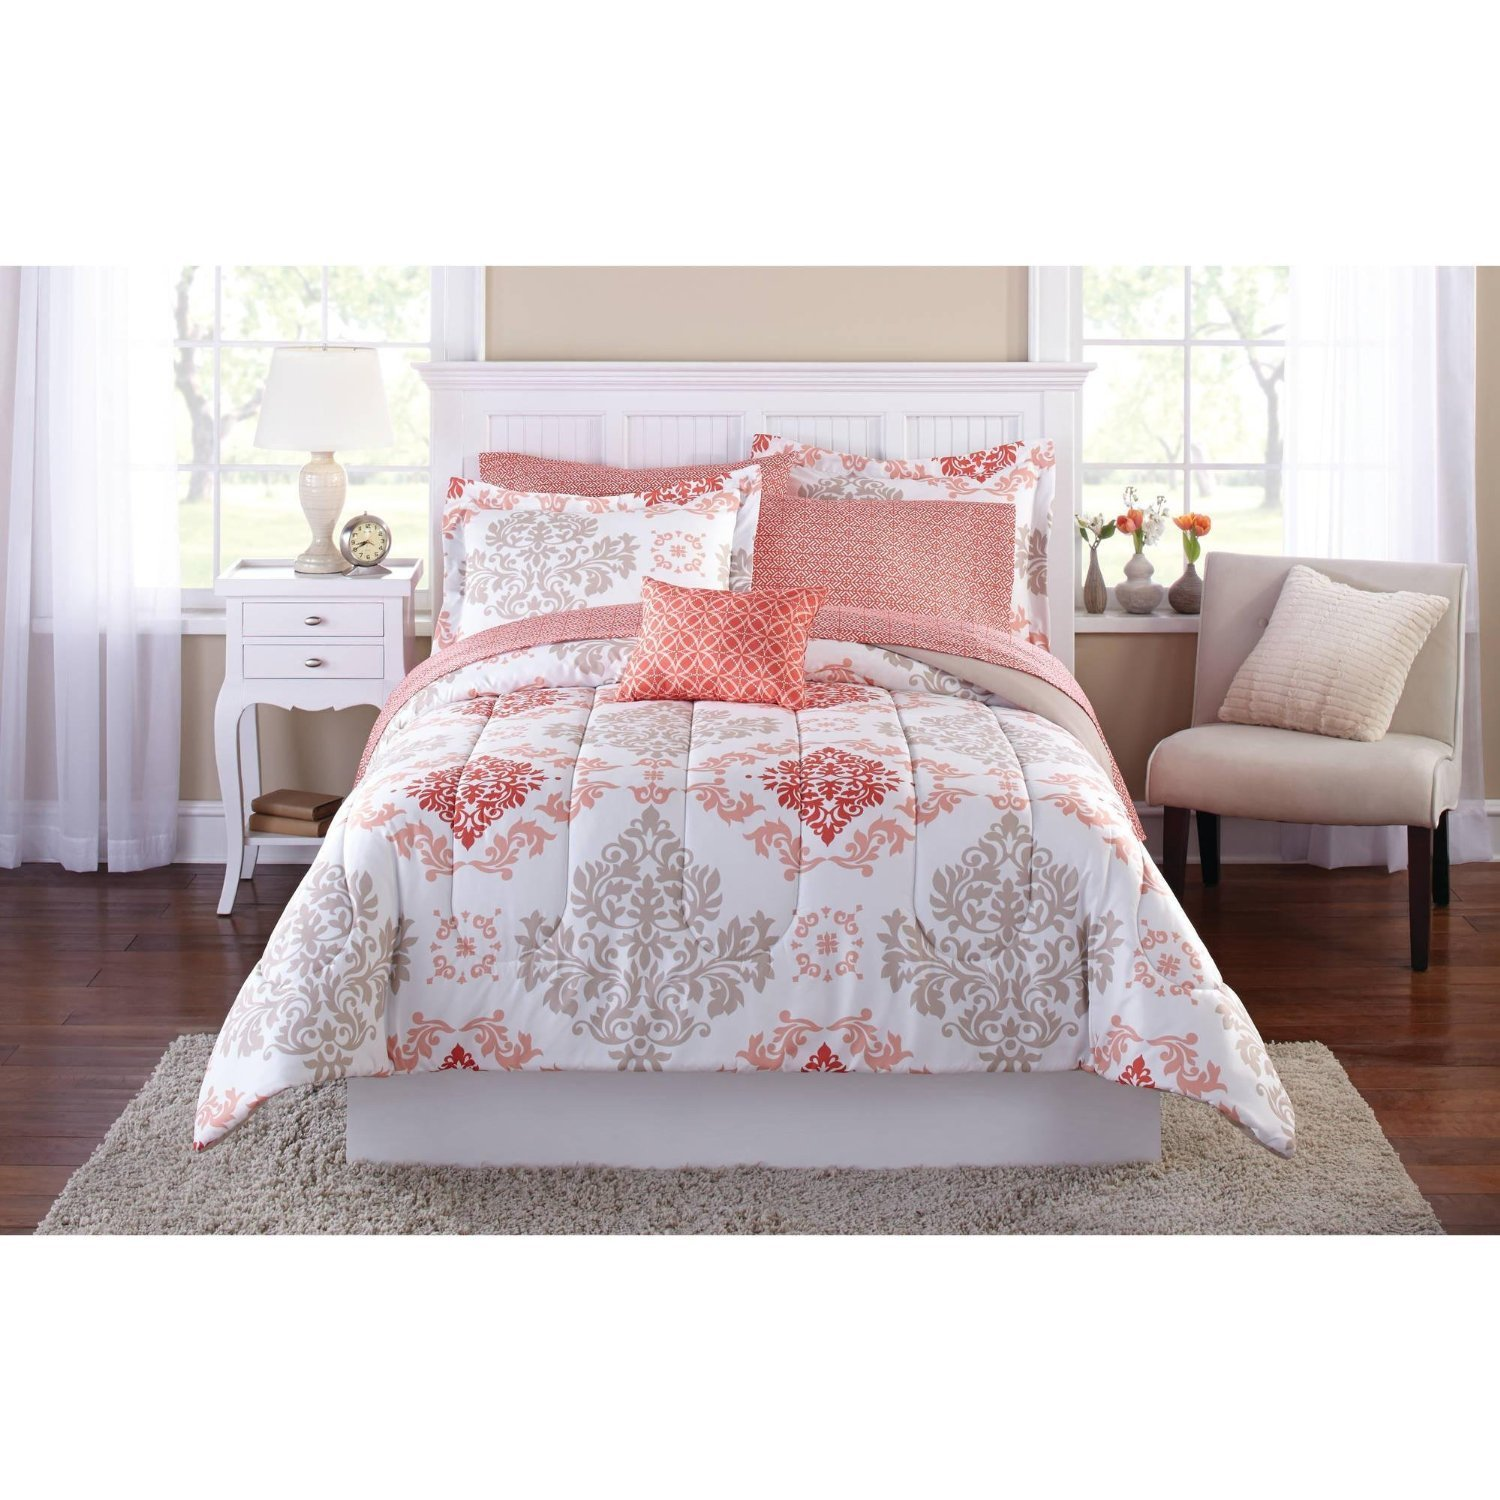 Teen boys and teen girls bedding sets ease bedding with style - Cute teenage girl bedding sets ...